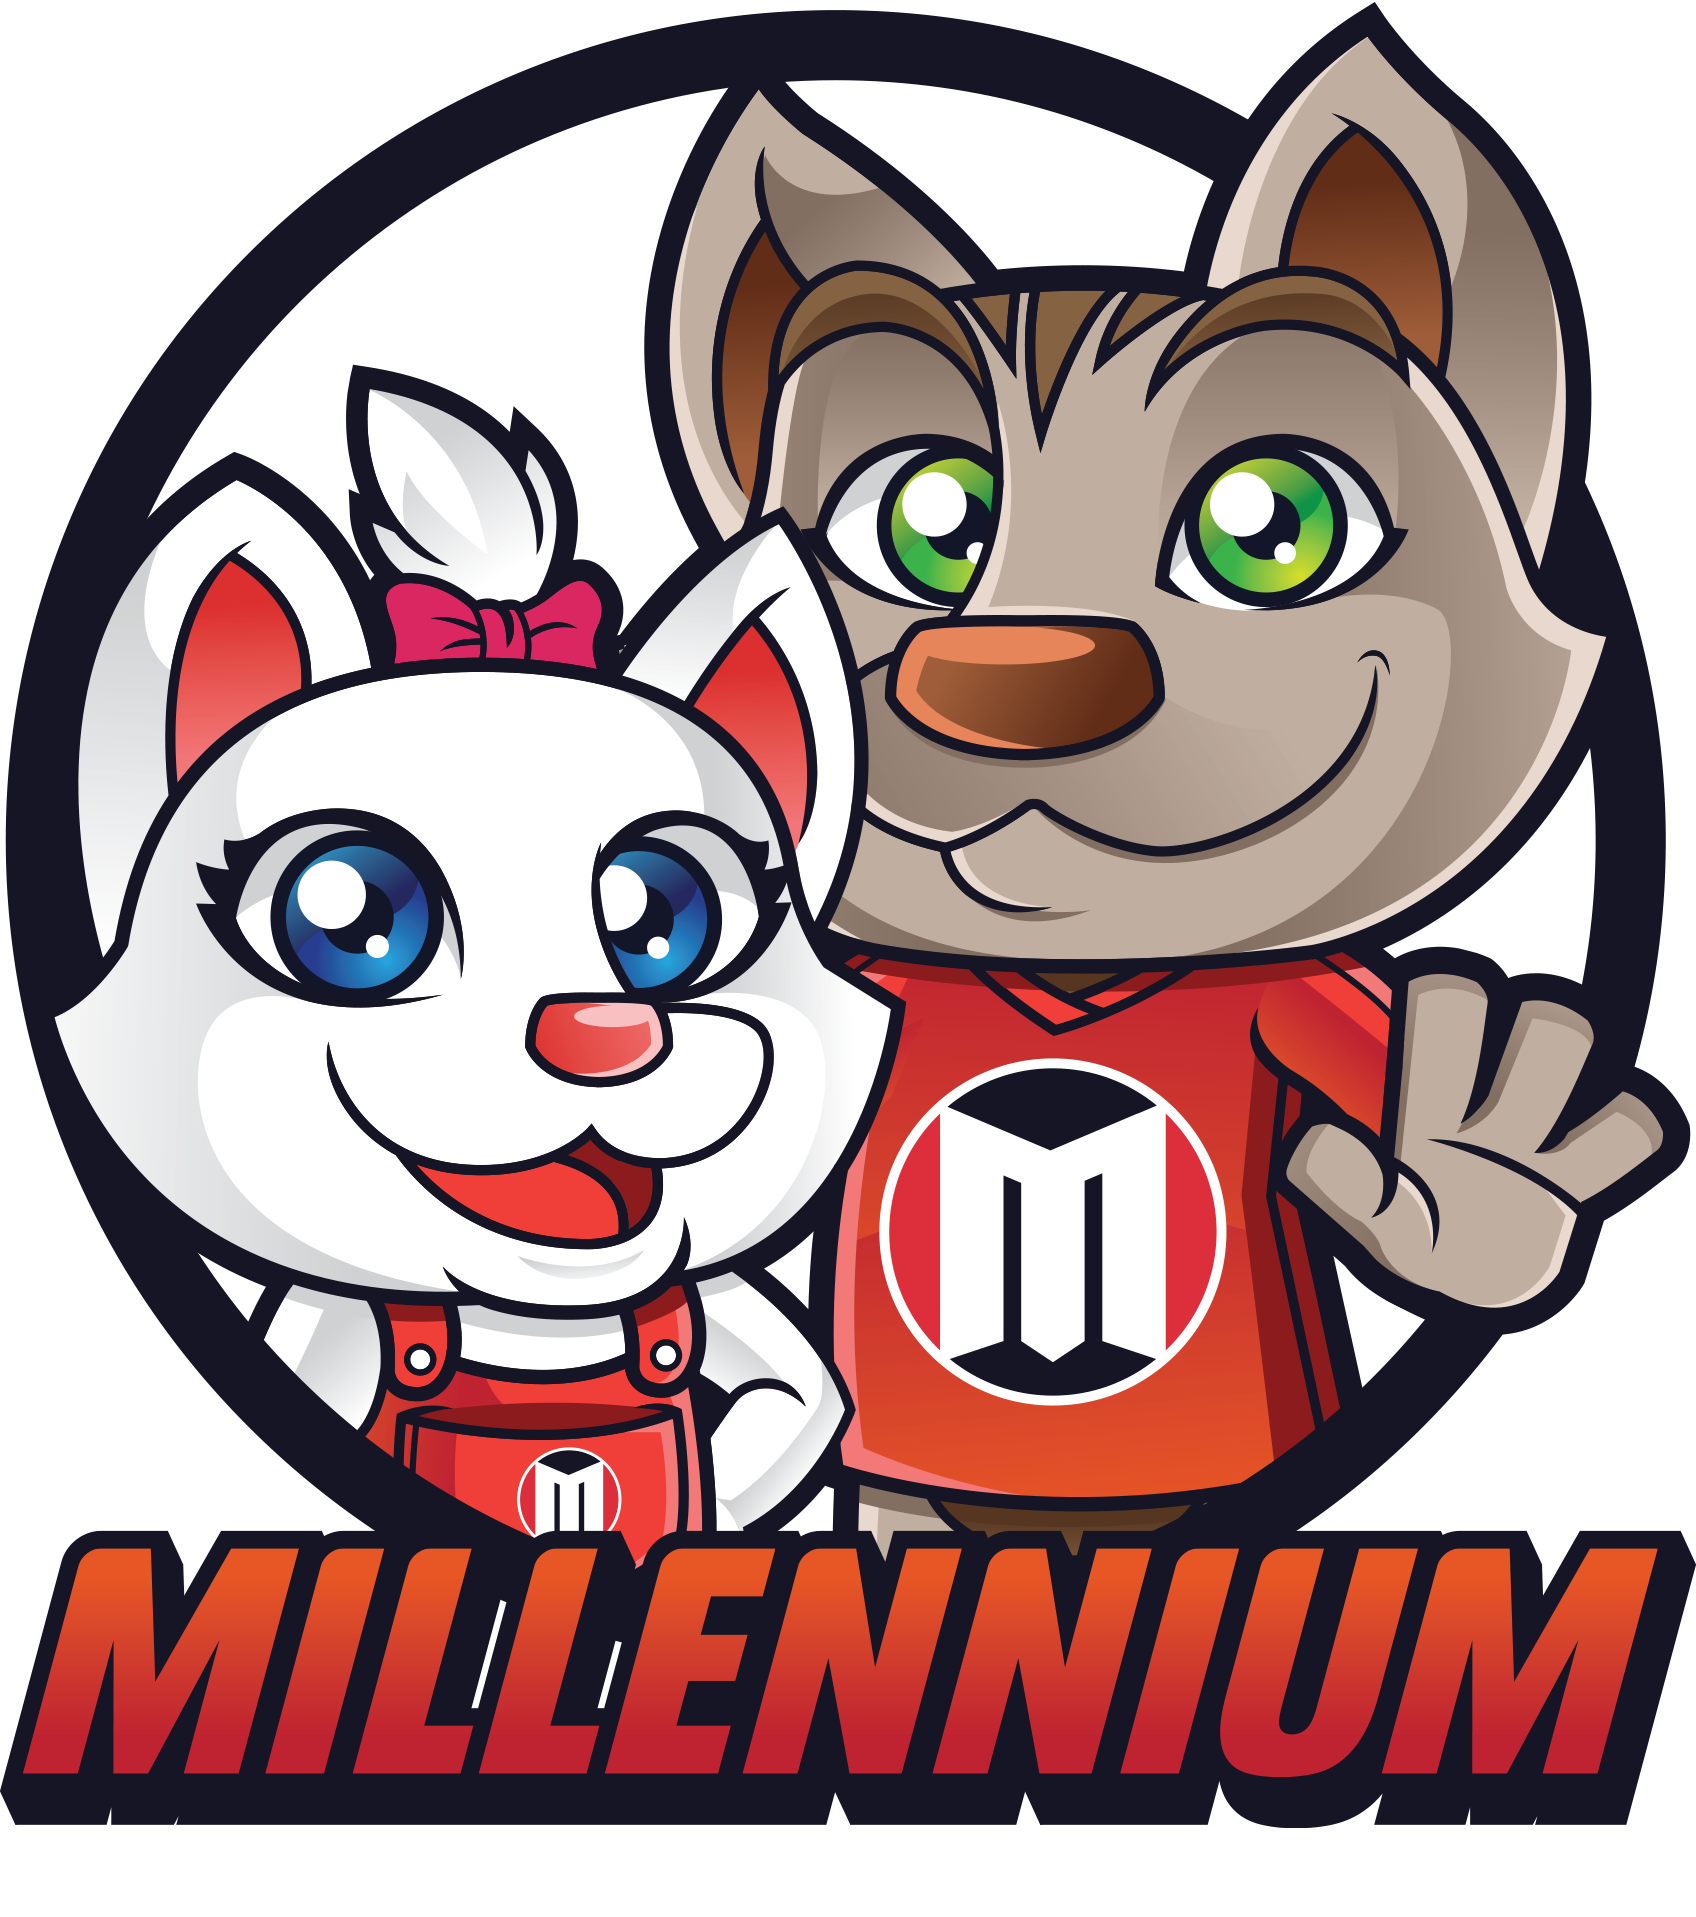 Millennium Family Entertainment